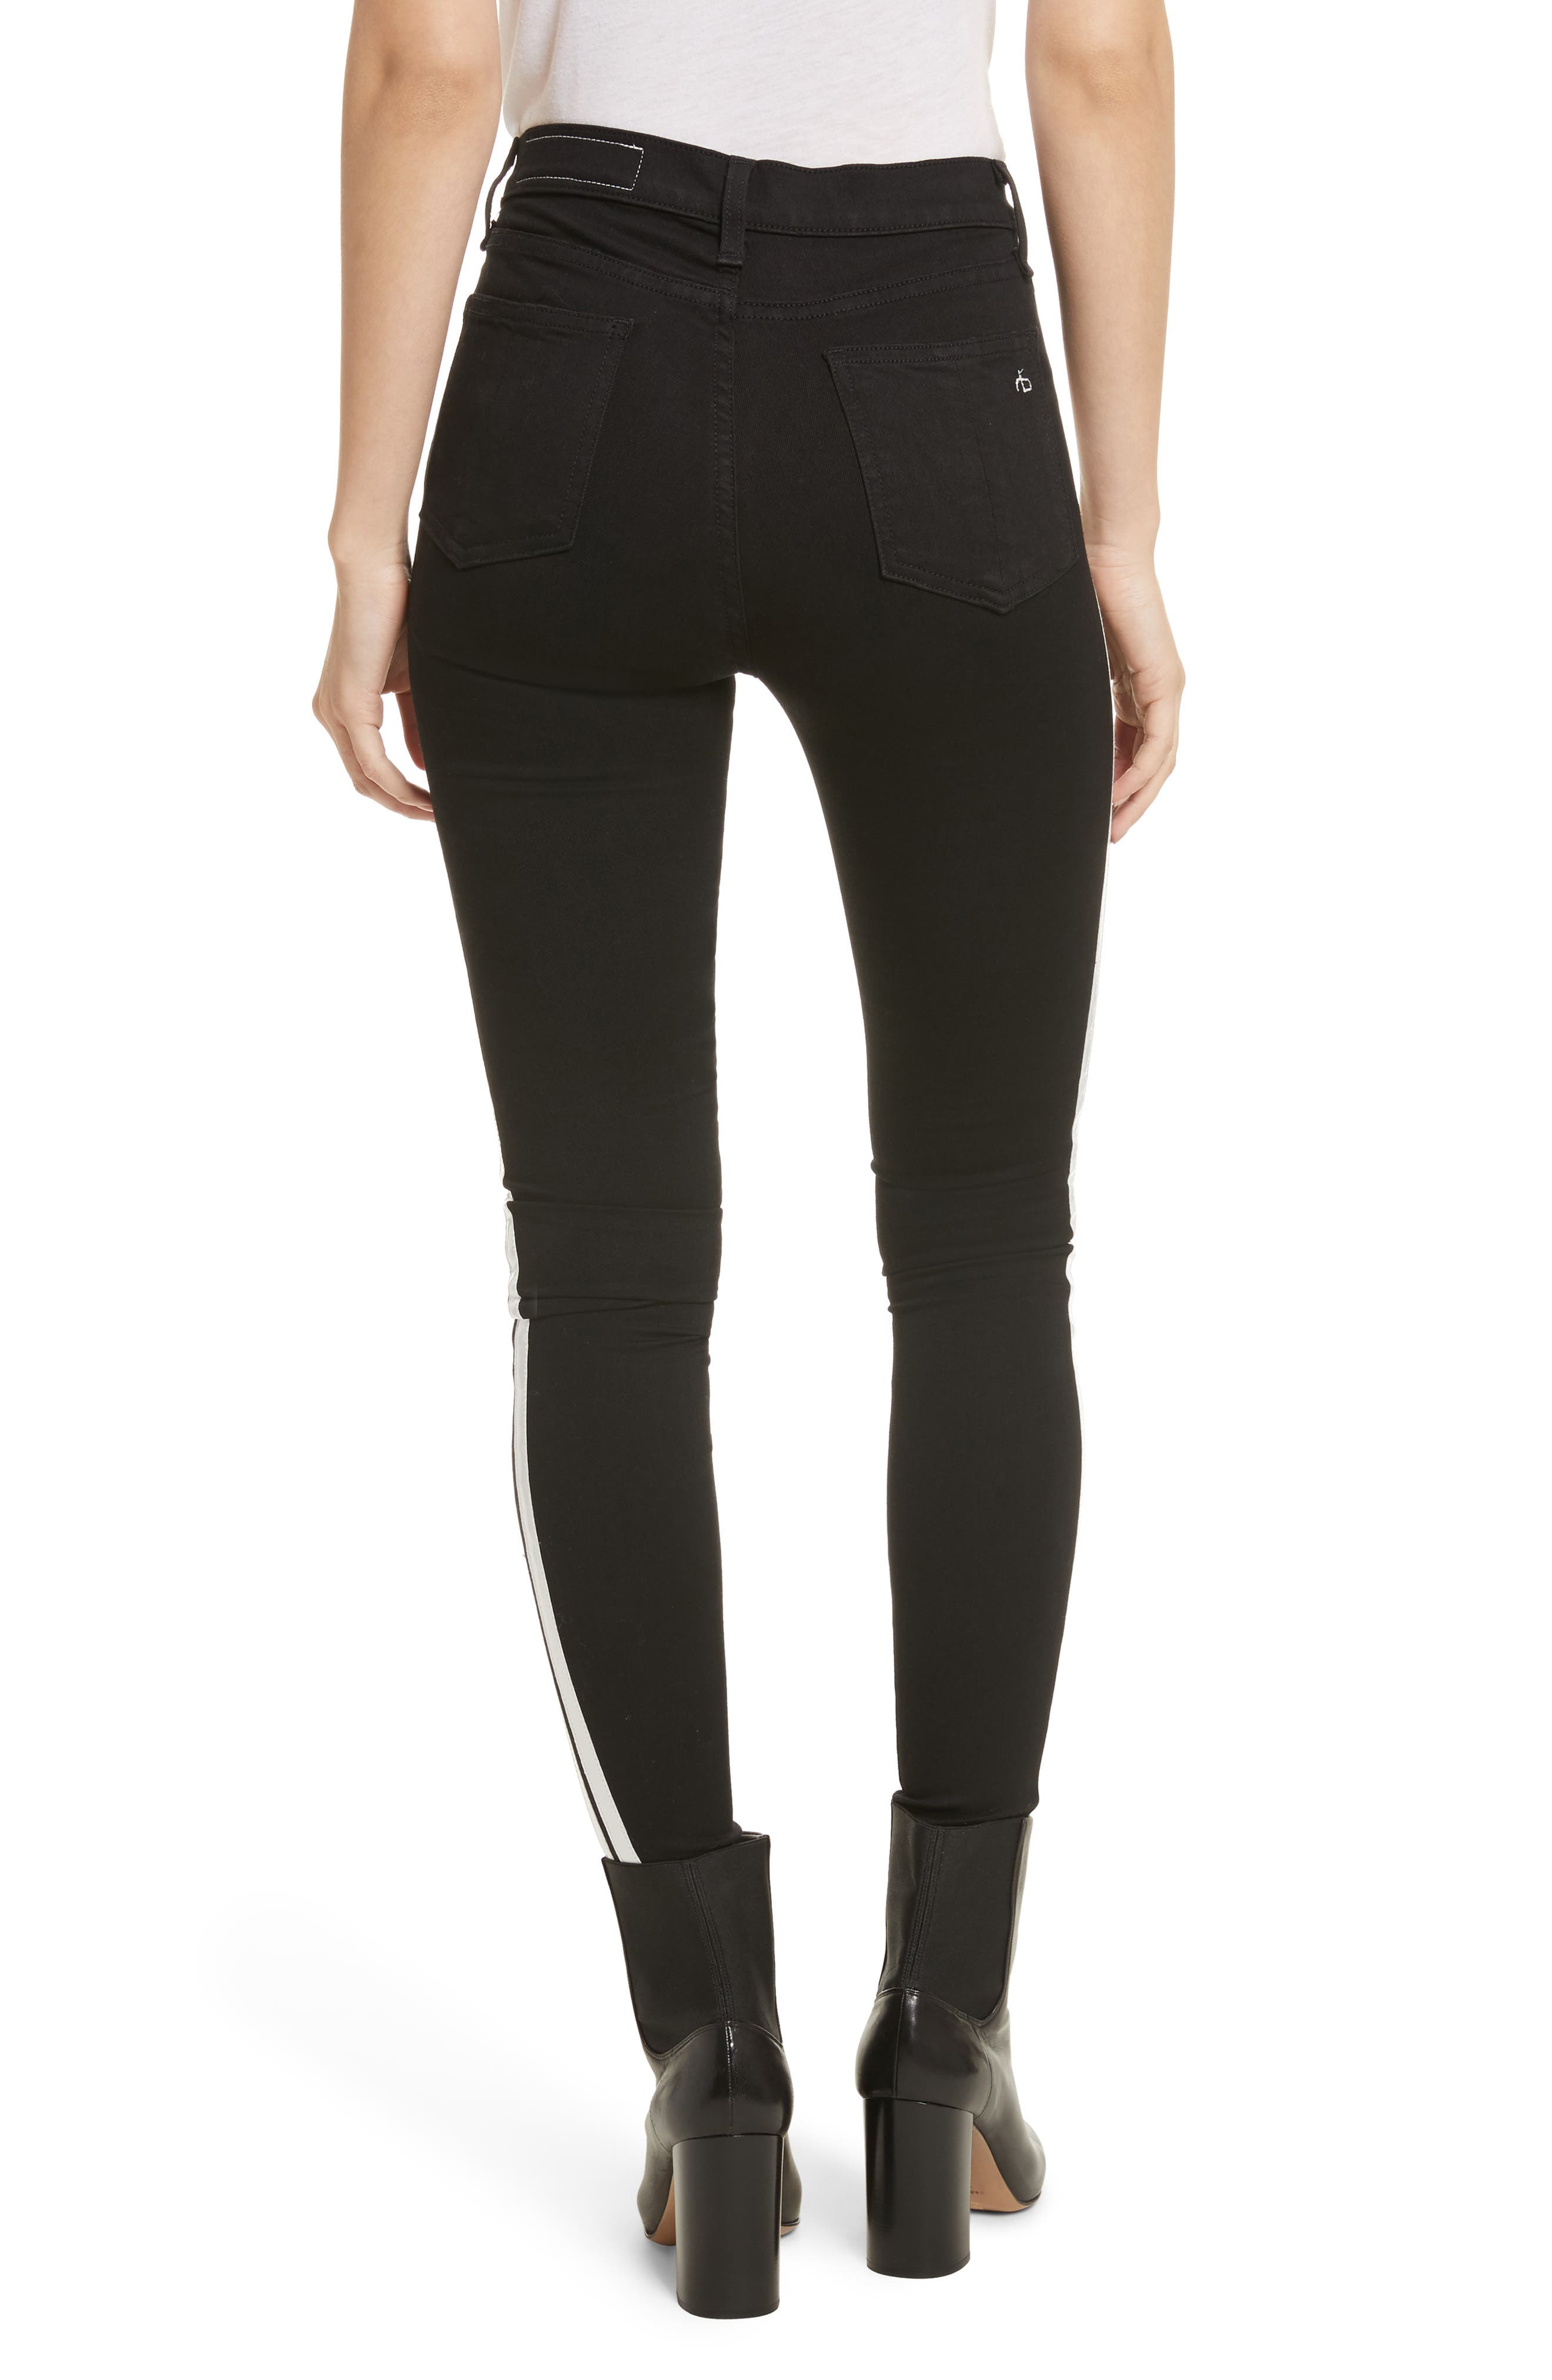 Mito High Waist Skinny Jeans,                             Alternate thumbnail 2, color,                             001